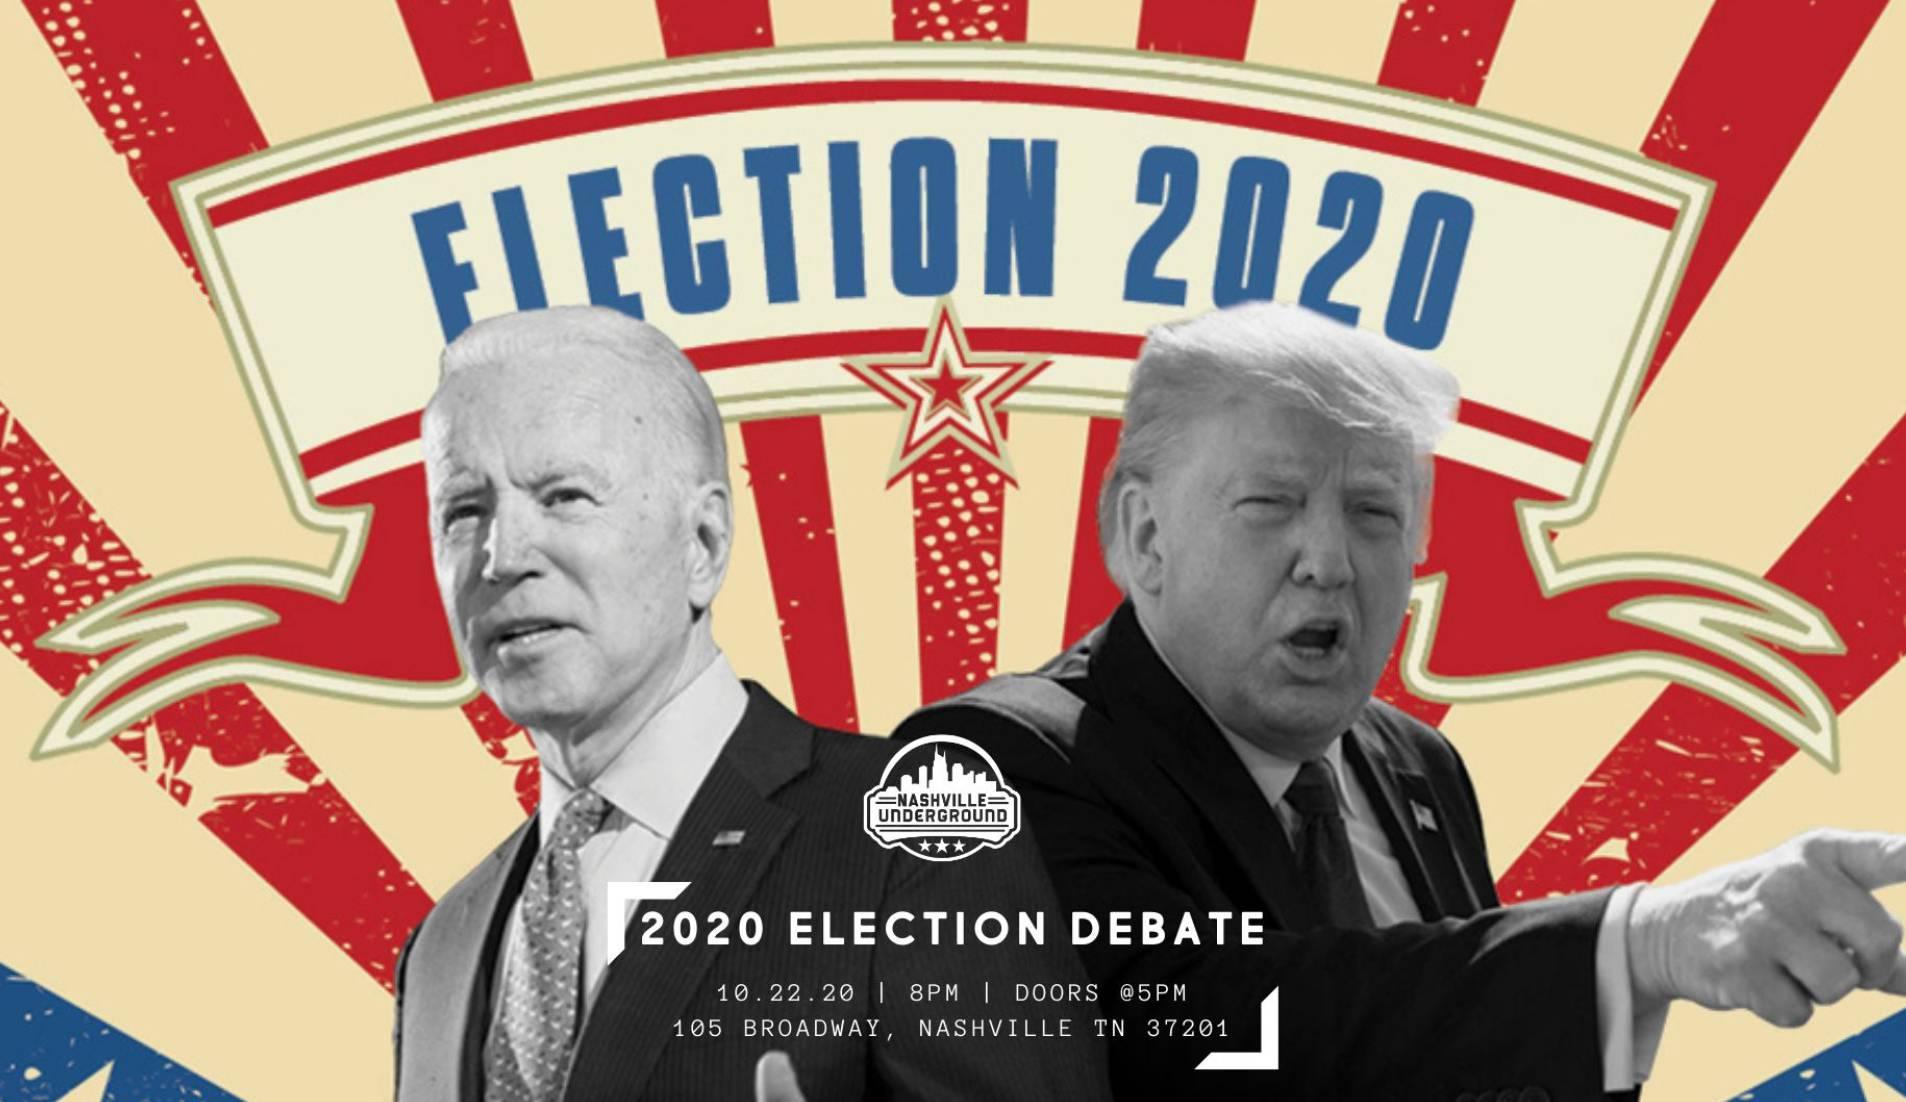 2020 Election Debate Watch Party